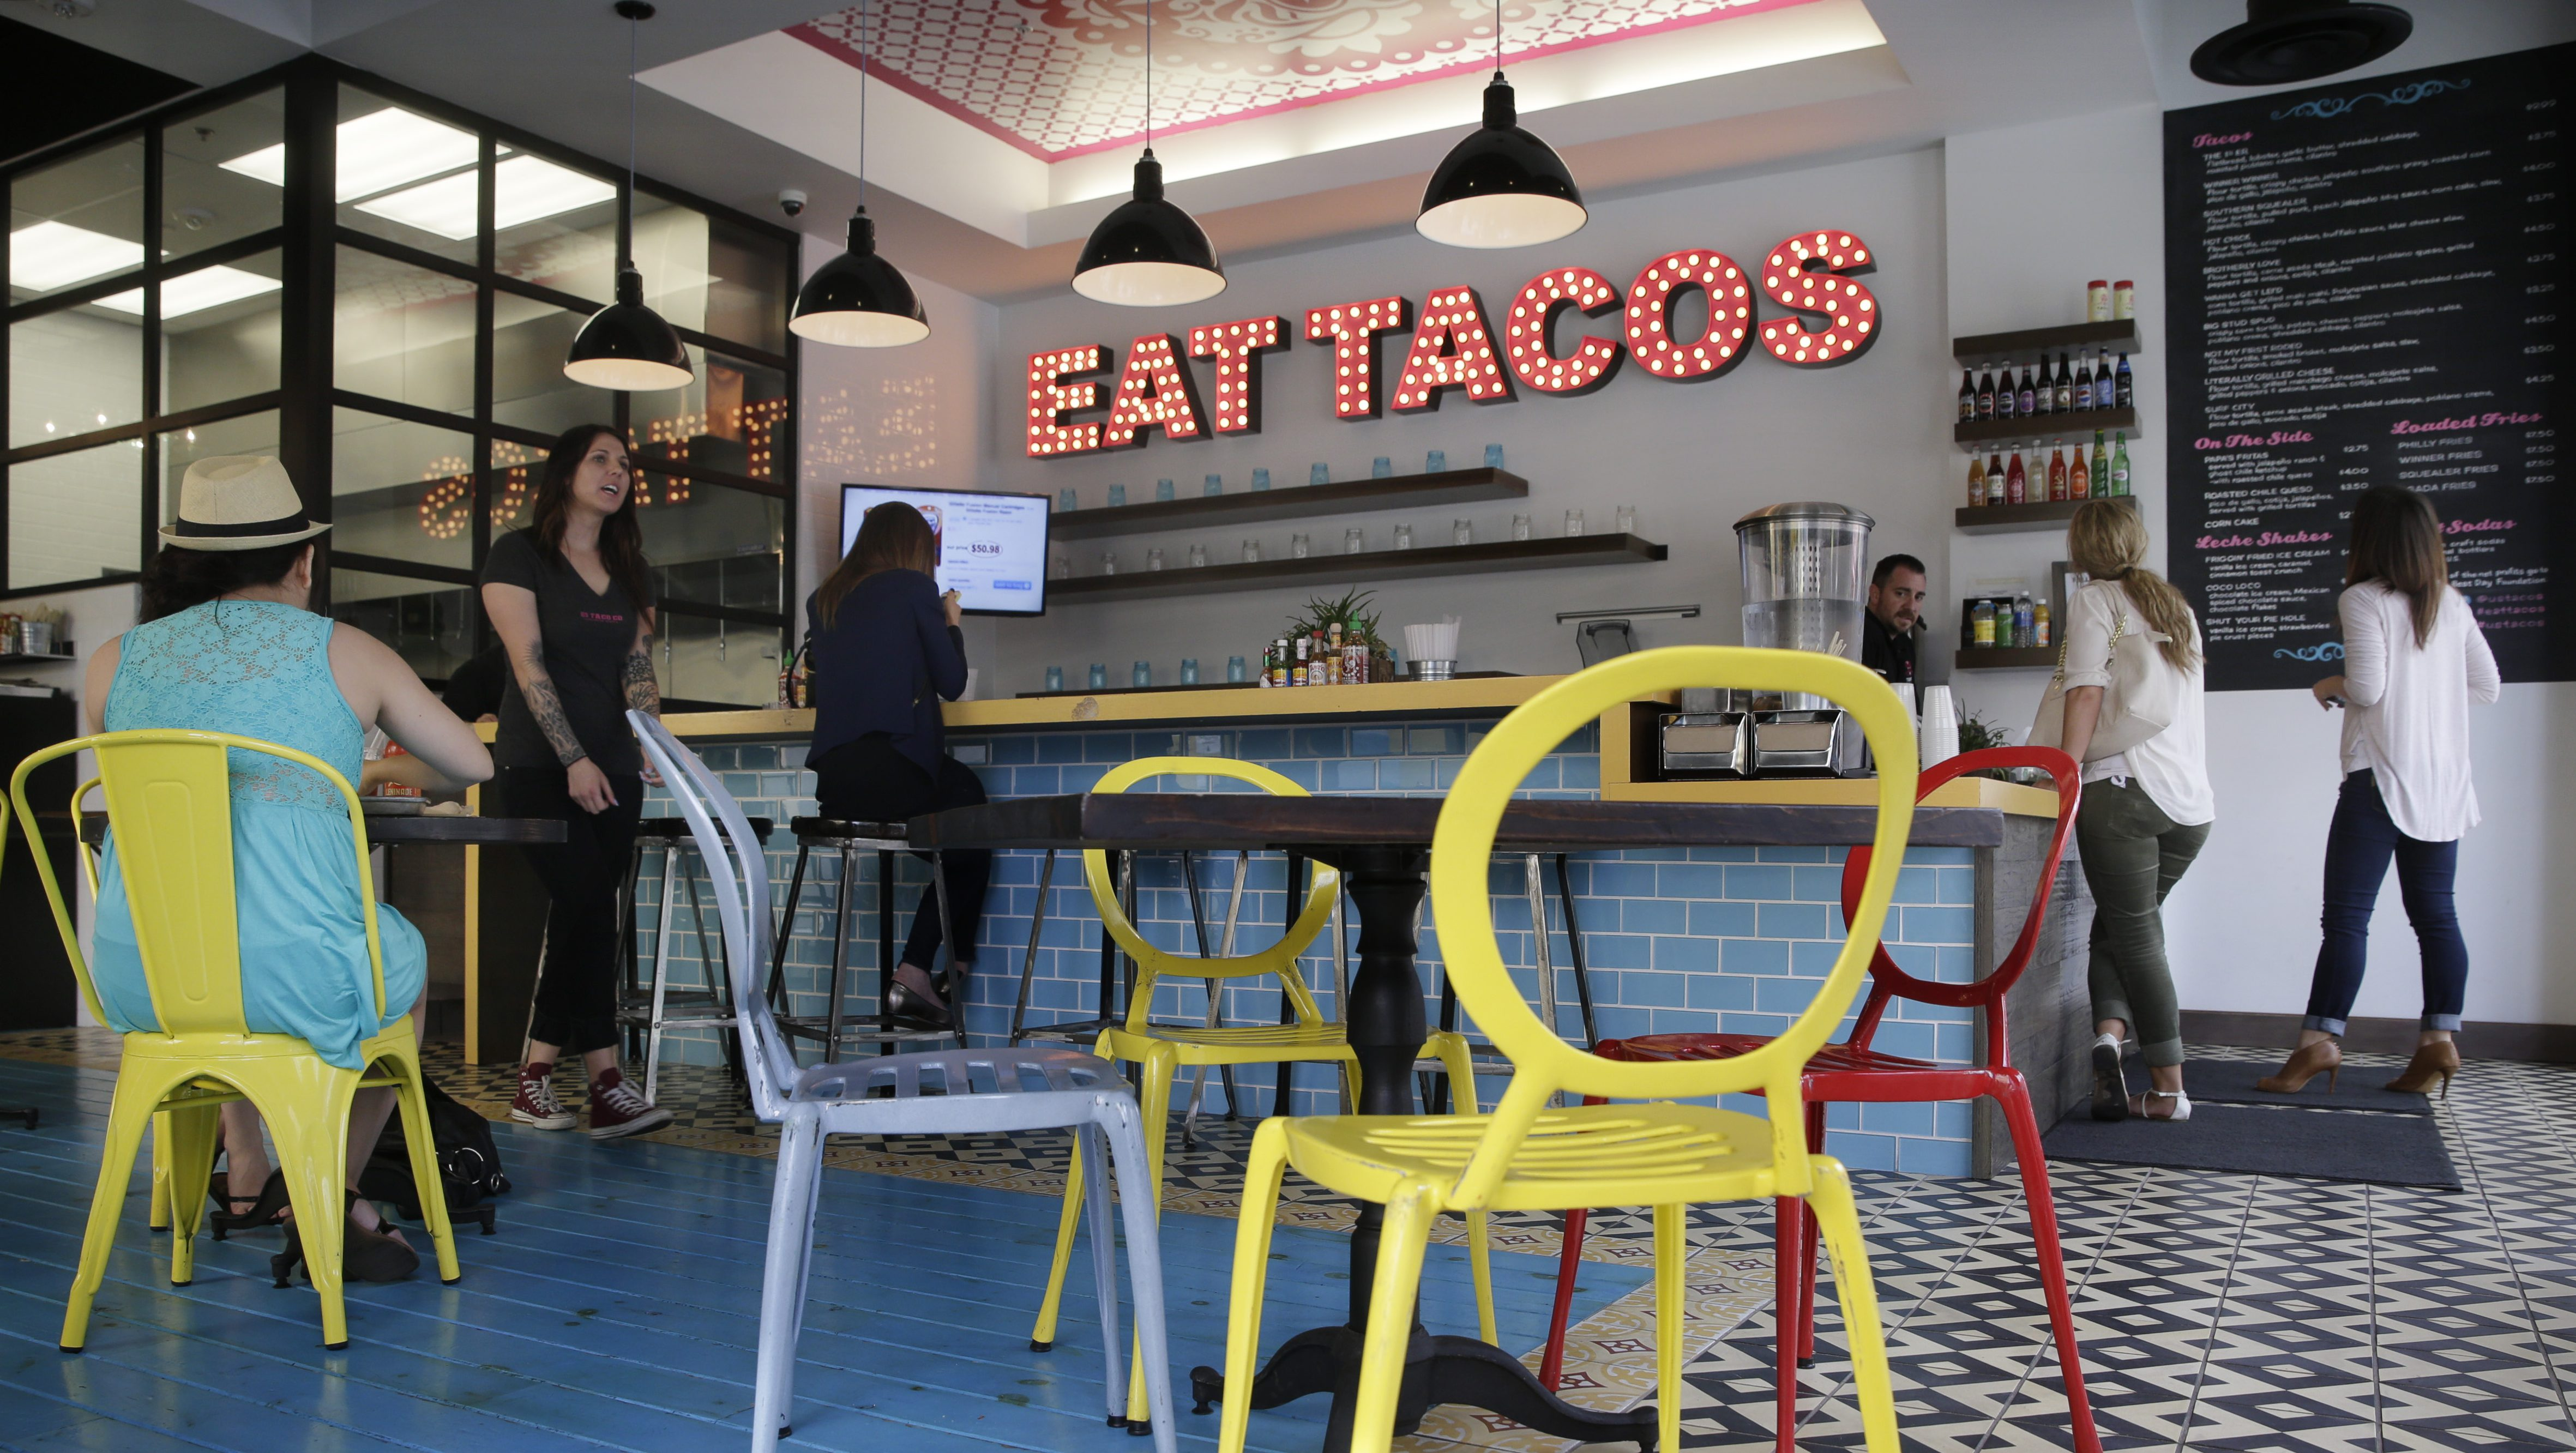 In this Feb. 20, 2015 photo, diners eat at U.S. Taco Co., which is owned by Taco Bell, in Huntington Beach, Calif. As people increasingly reach for foods that stray from the norm and seem less processed, some companies are testing whether it would pay to tuck away their famous logos in favor of more hipster guises. (AP Photo/Jae C. Hong)